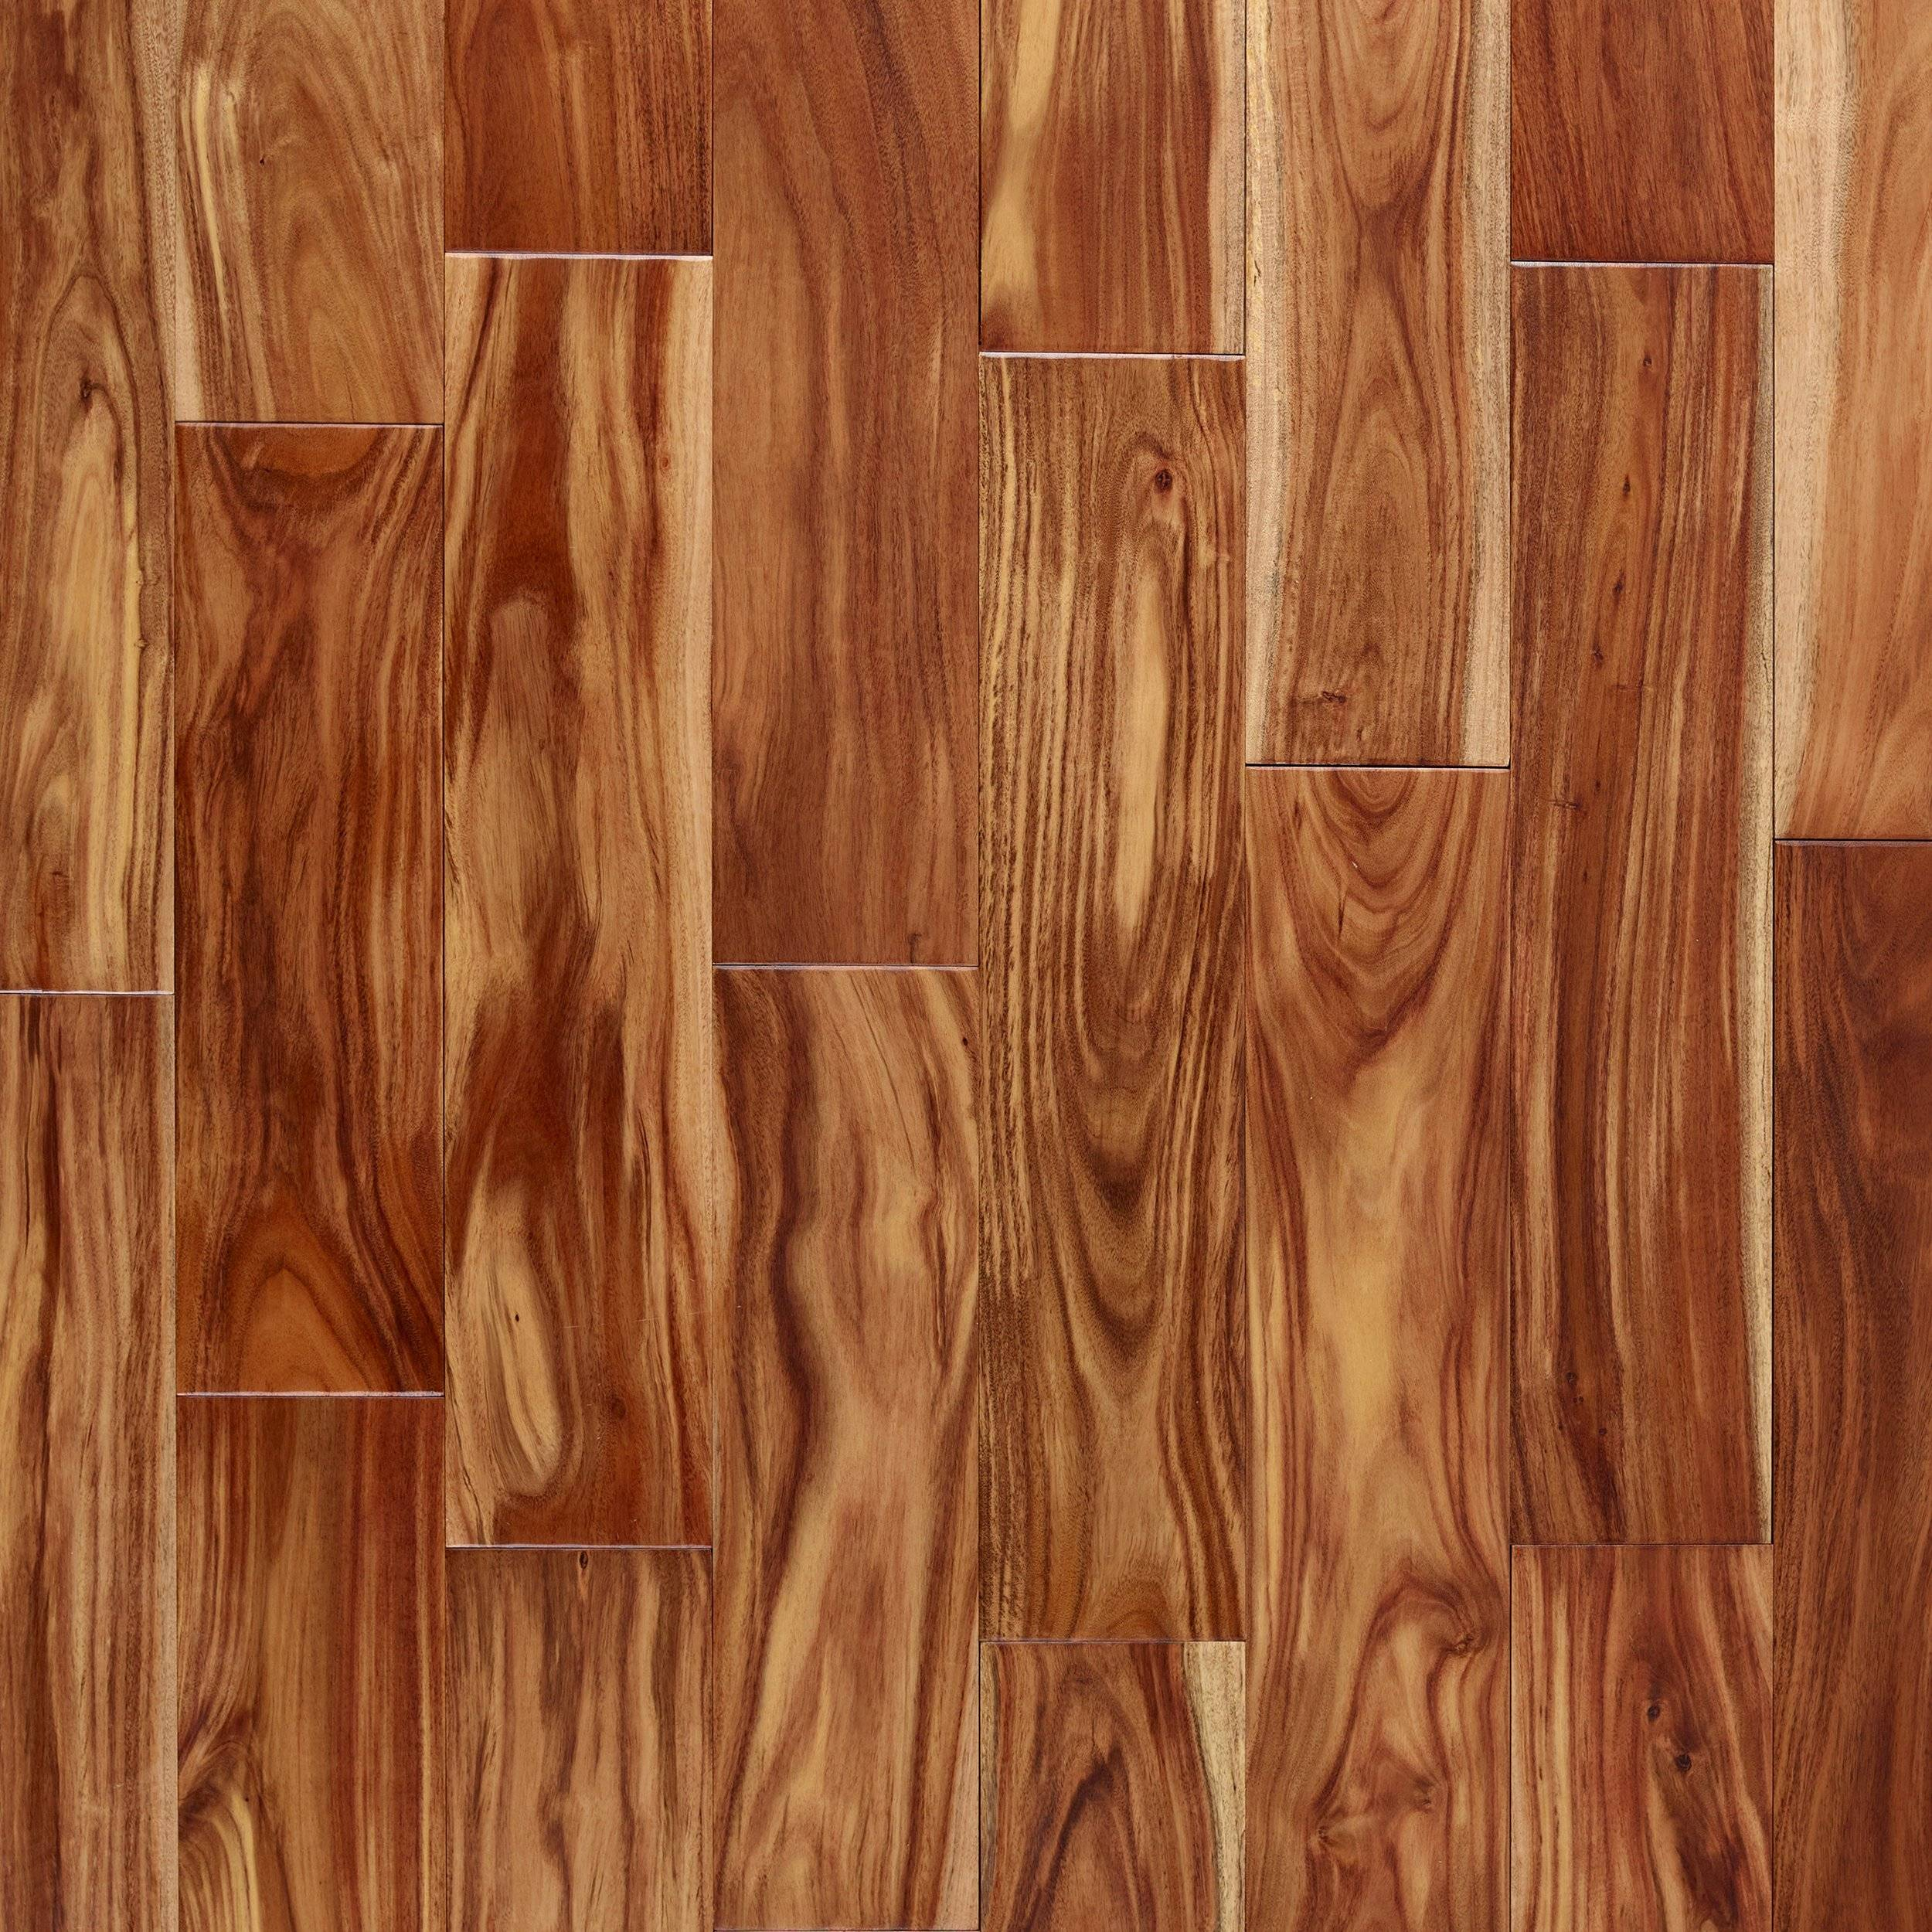 New! Buford Acacia Wire-Brushed Solid Hardwood